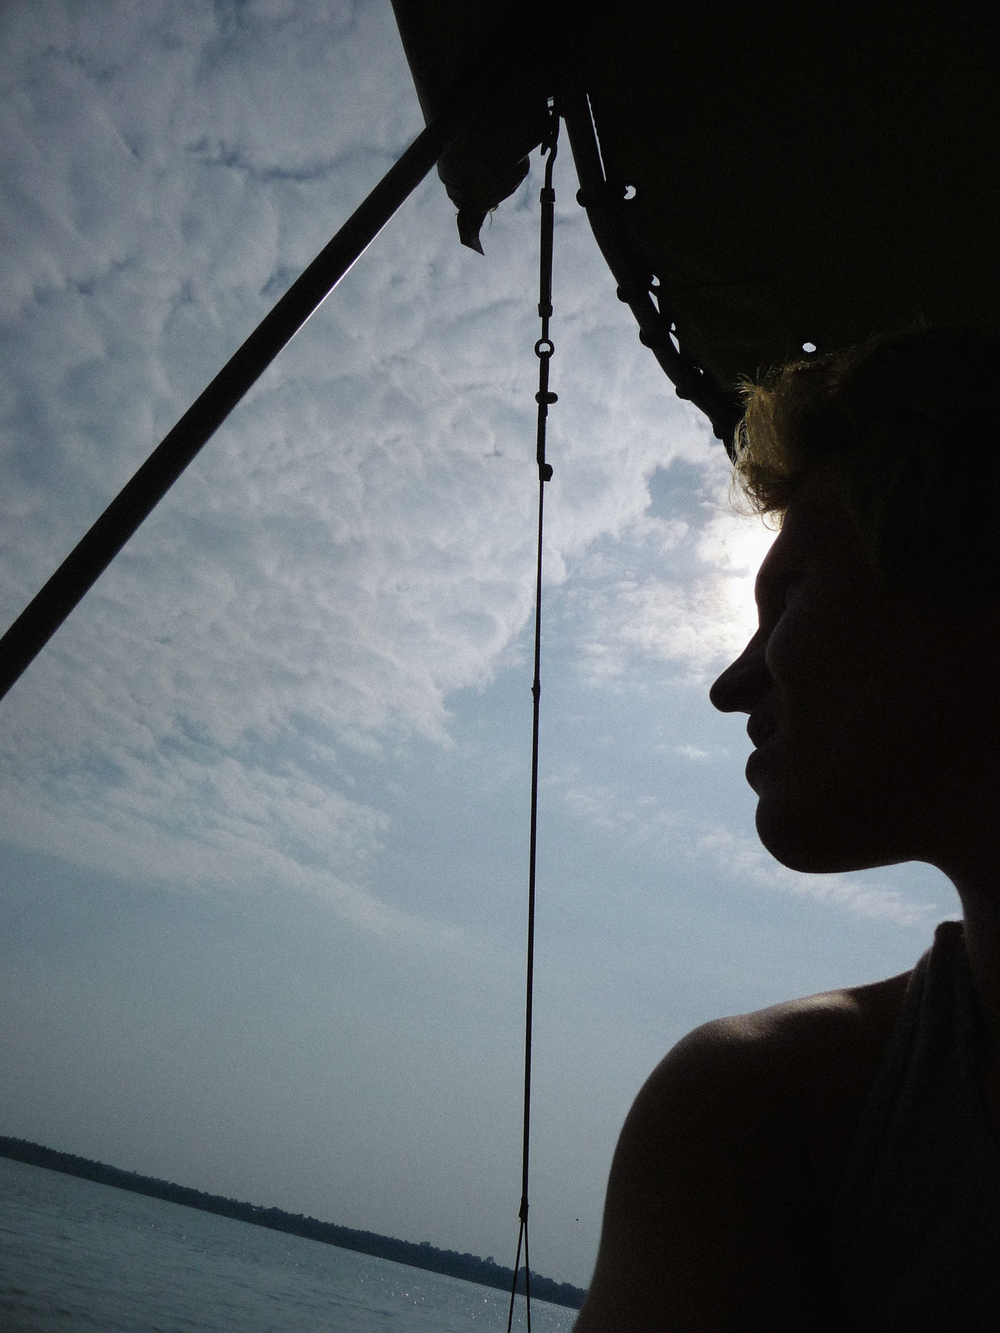 Looking back through the distorted lens of memory. [Somewhere in Lake Victoria. 2010.]